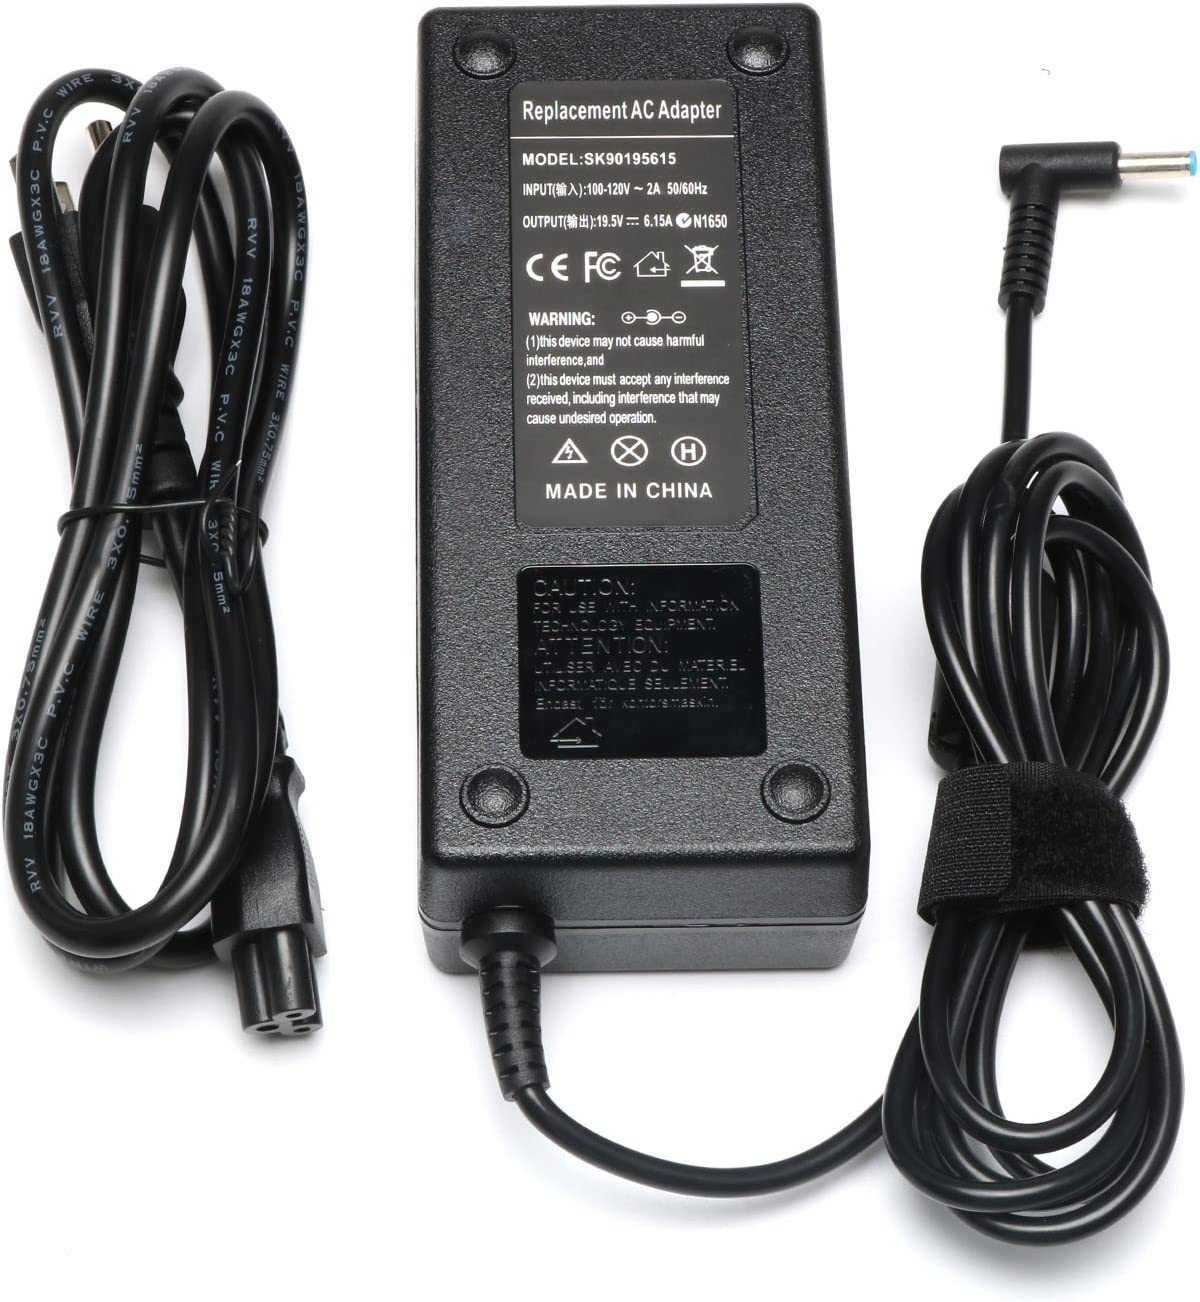 New 120W 19.5V 6.15A AC Laptop Adapter Charger for HP 710415-001 Envy 15 17 15-j008tx 15-j051nr 15-bc220nr 15-J002LA 17-1006tx 17-1007tx TouchSmart Sleekbook